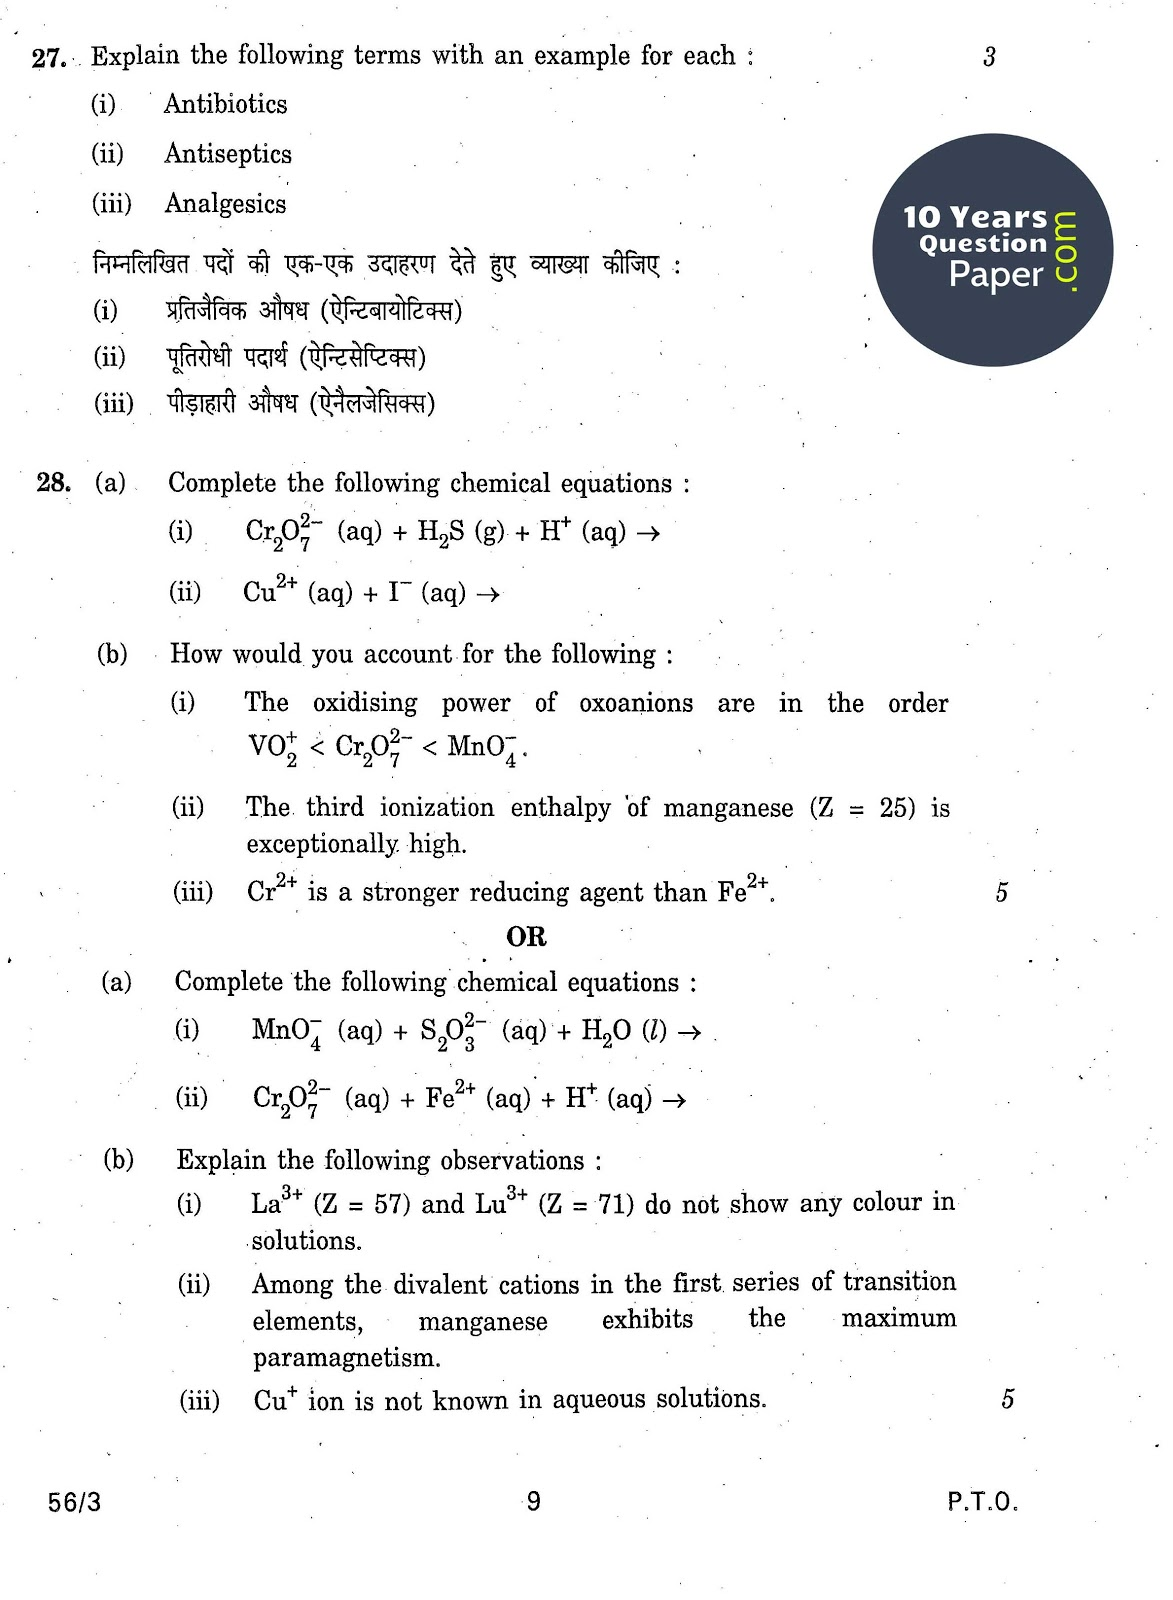 cbse class 12th 2010 chemistry question paper